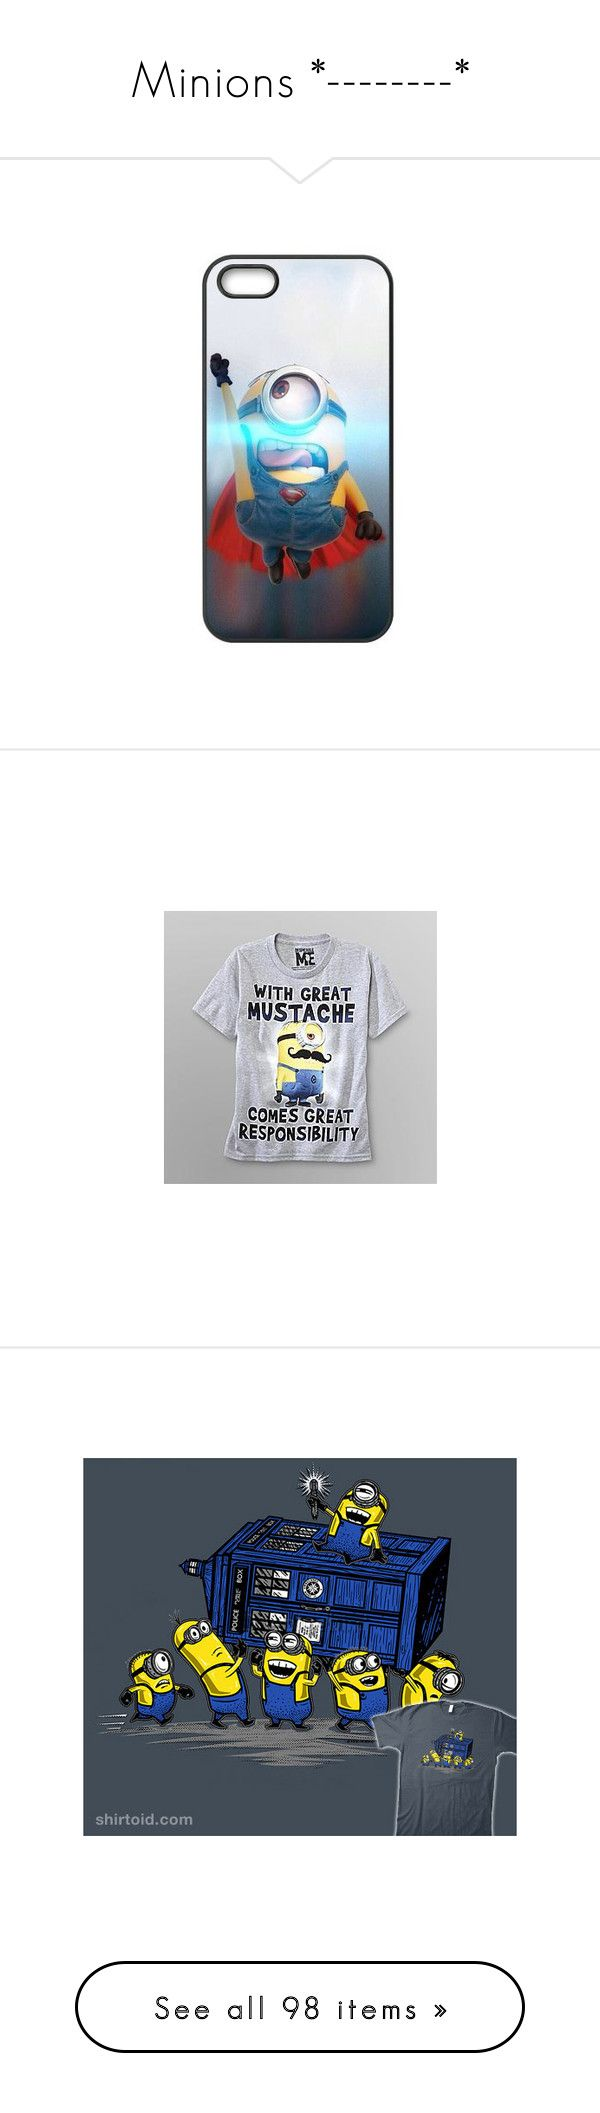 """""""Minions *--------*"""" by angeline-vellar ❤ liked on Polyvore featuring shoes, converse, minions, chaussure, sneakers, accessories, tech accessories, phone cases, phones and electronics"""